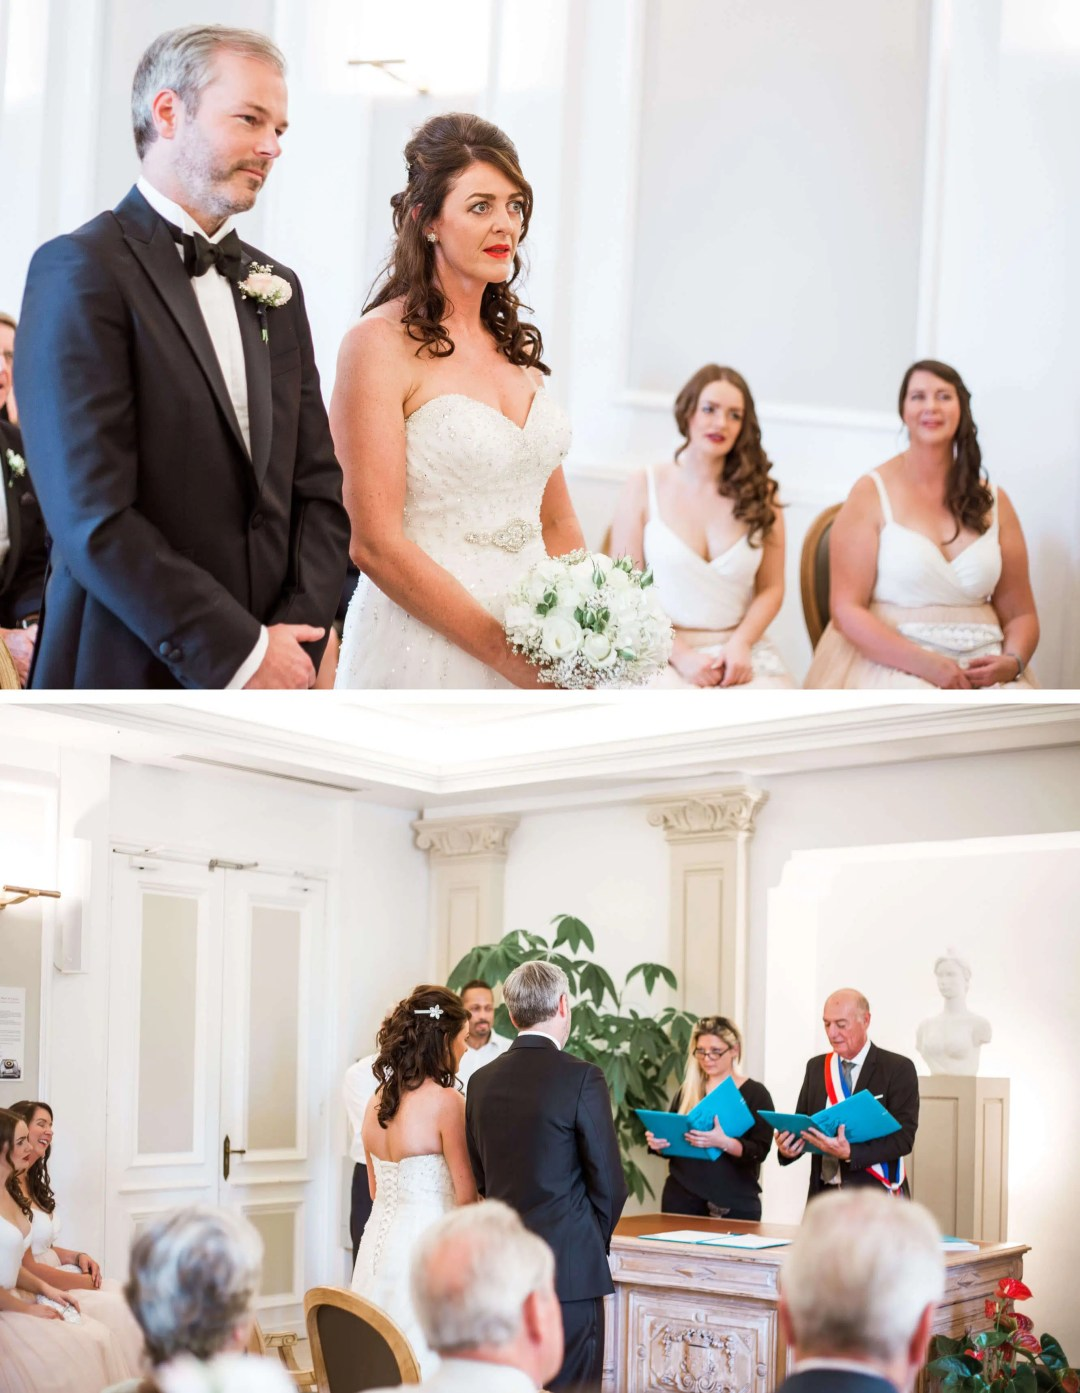 la-mairie-town-hall-ceremony-destination-wedding-photographer